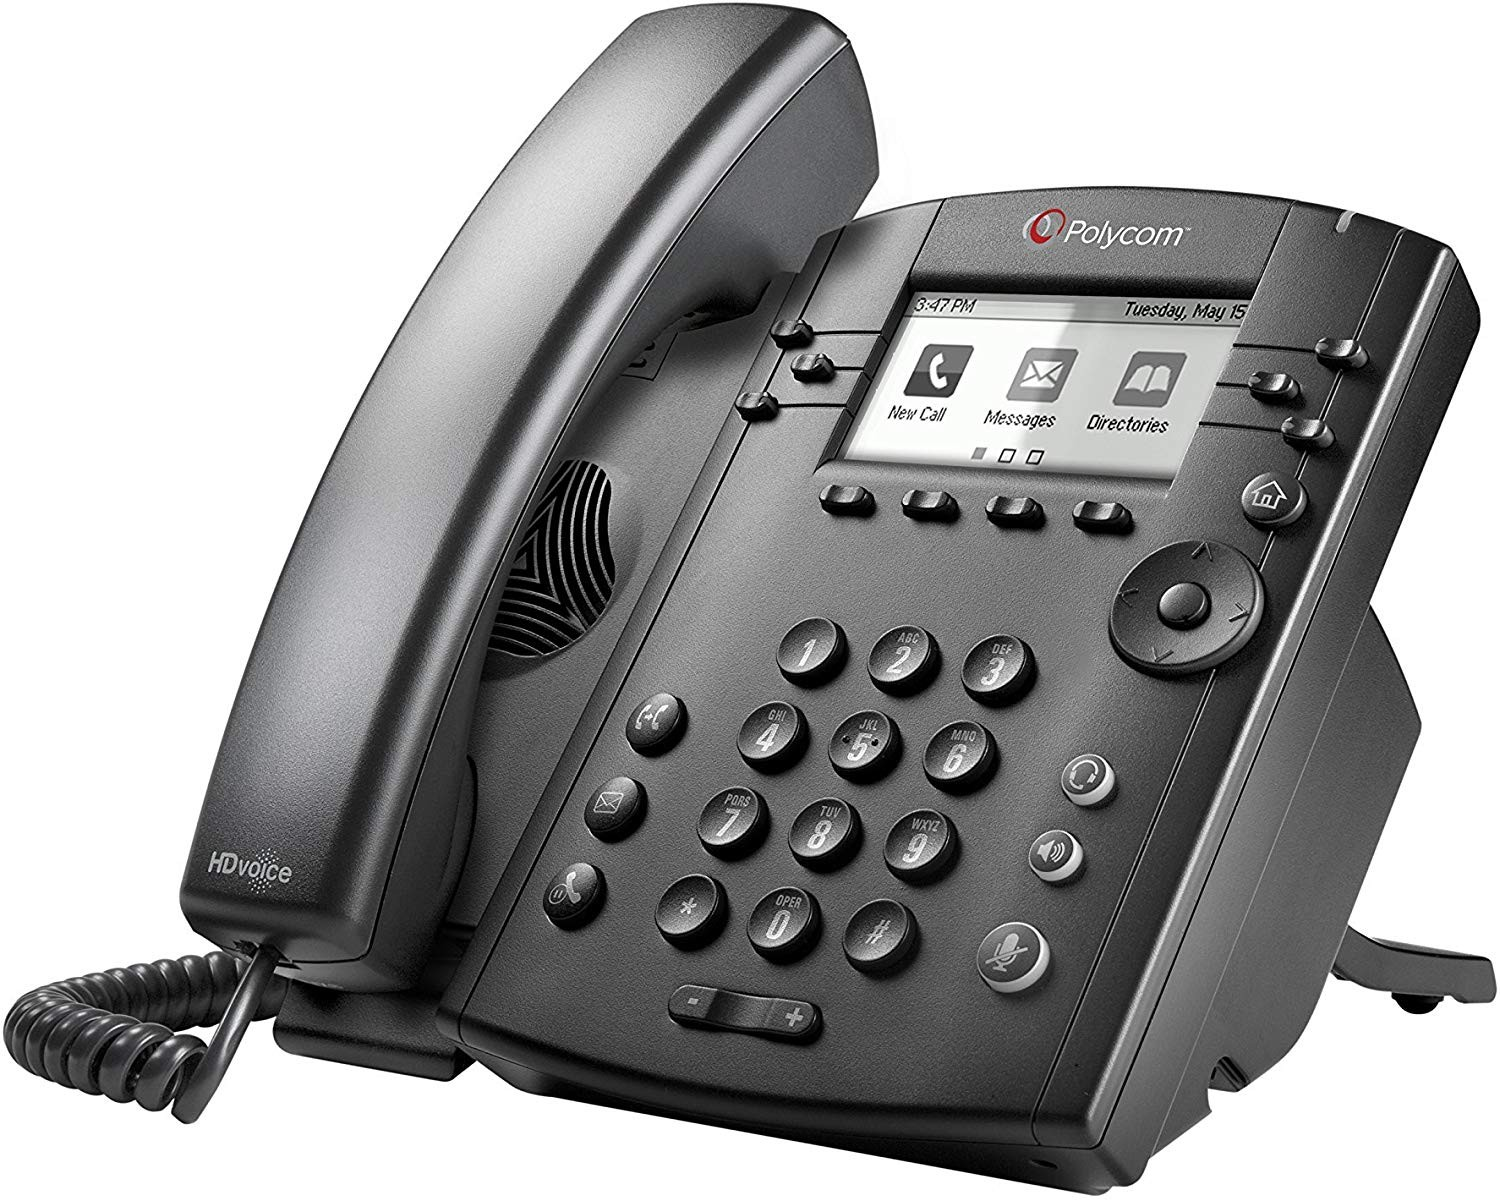 Polycom Vvx 300 Business Poe Ip Phone 2200-46135-025 (Power Supply Not Included)